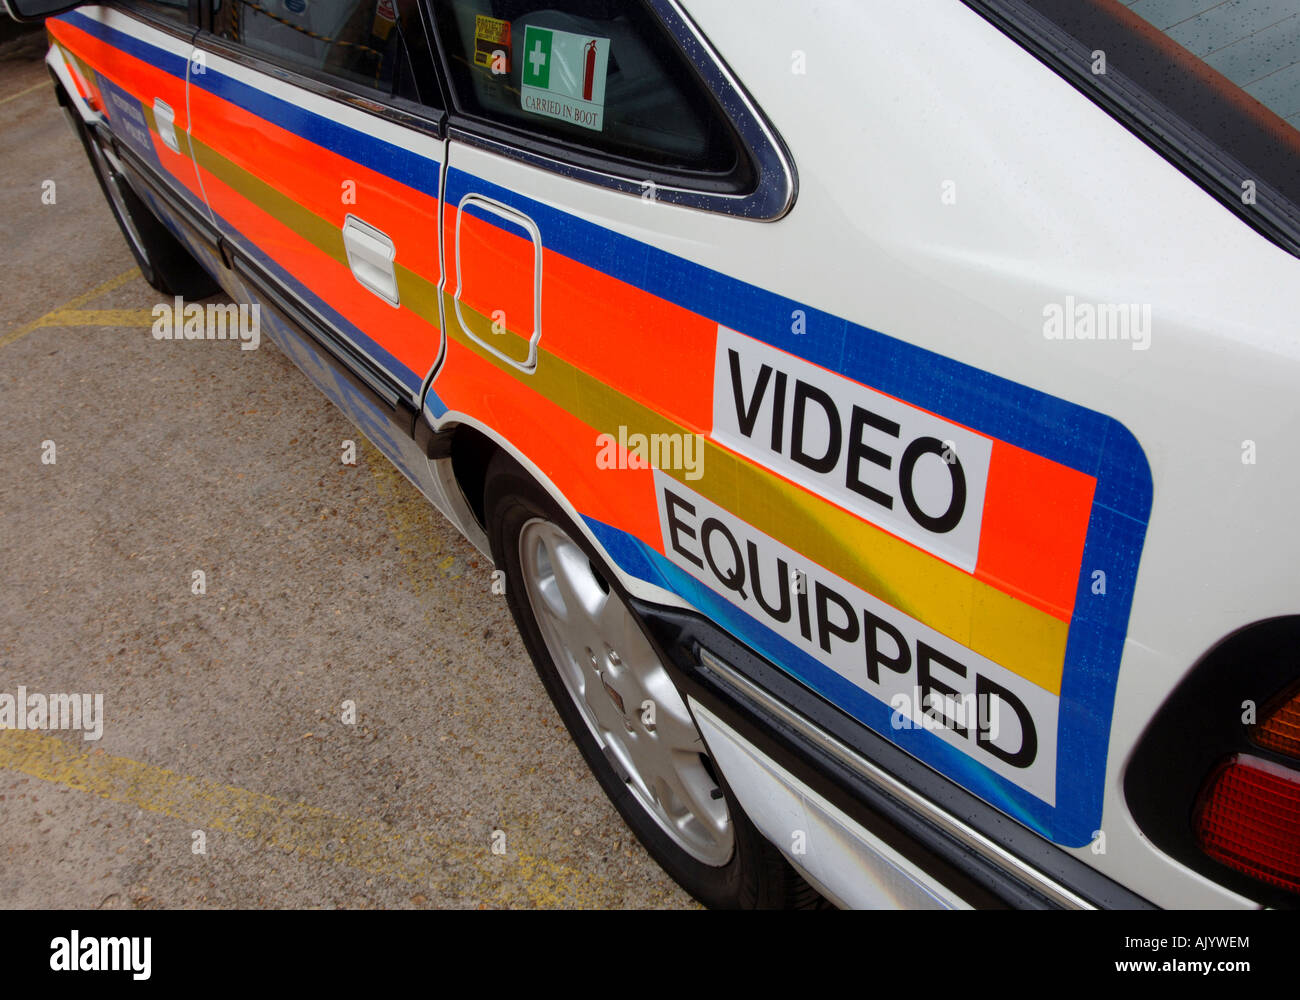 827 Stock Photos Images Alamy Rover Wiring Diagram Video Equipped Reflective Markings On A Police We Are Watching You